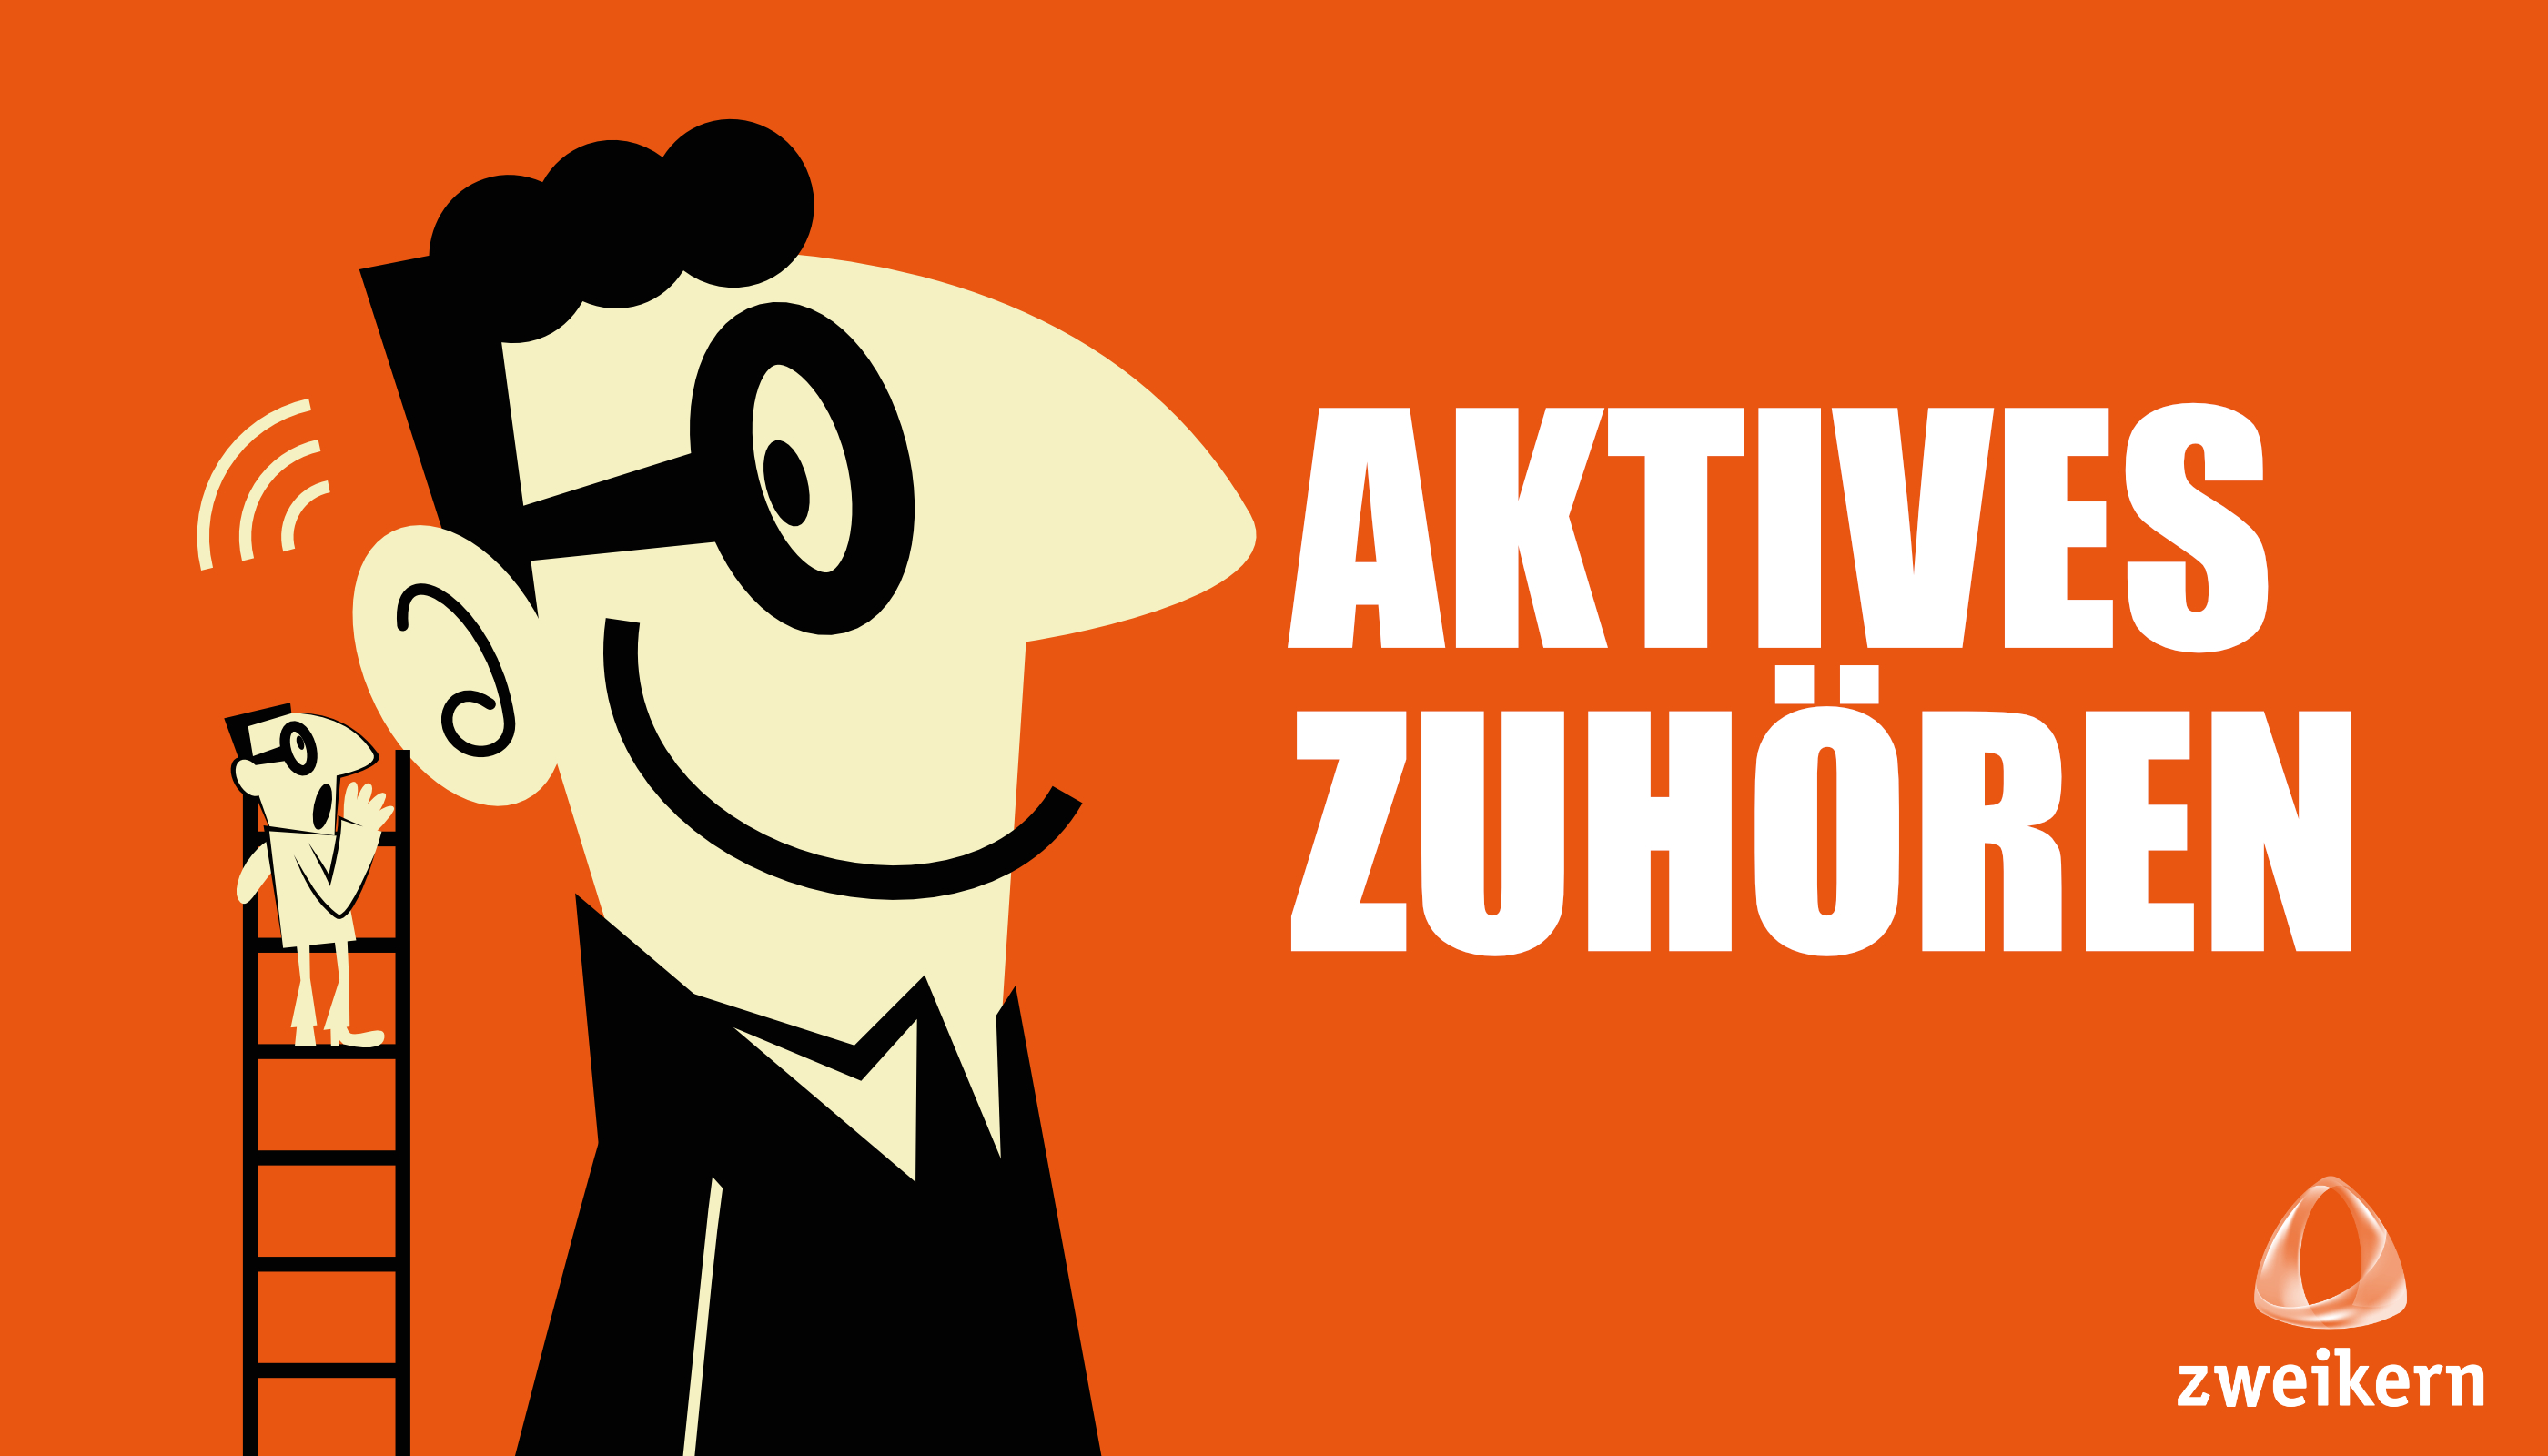 aktives zuhren der kern der kommunikation - Aktives Zuhoren Beispiele